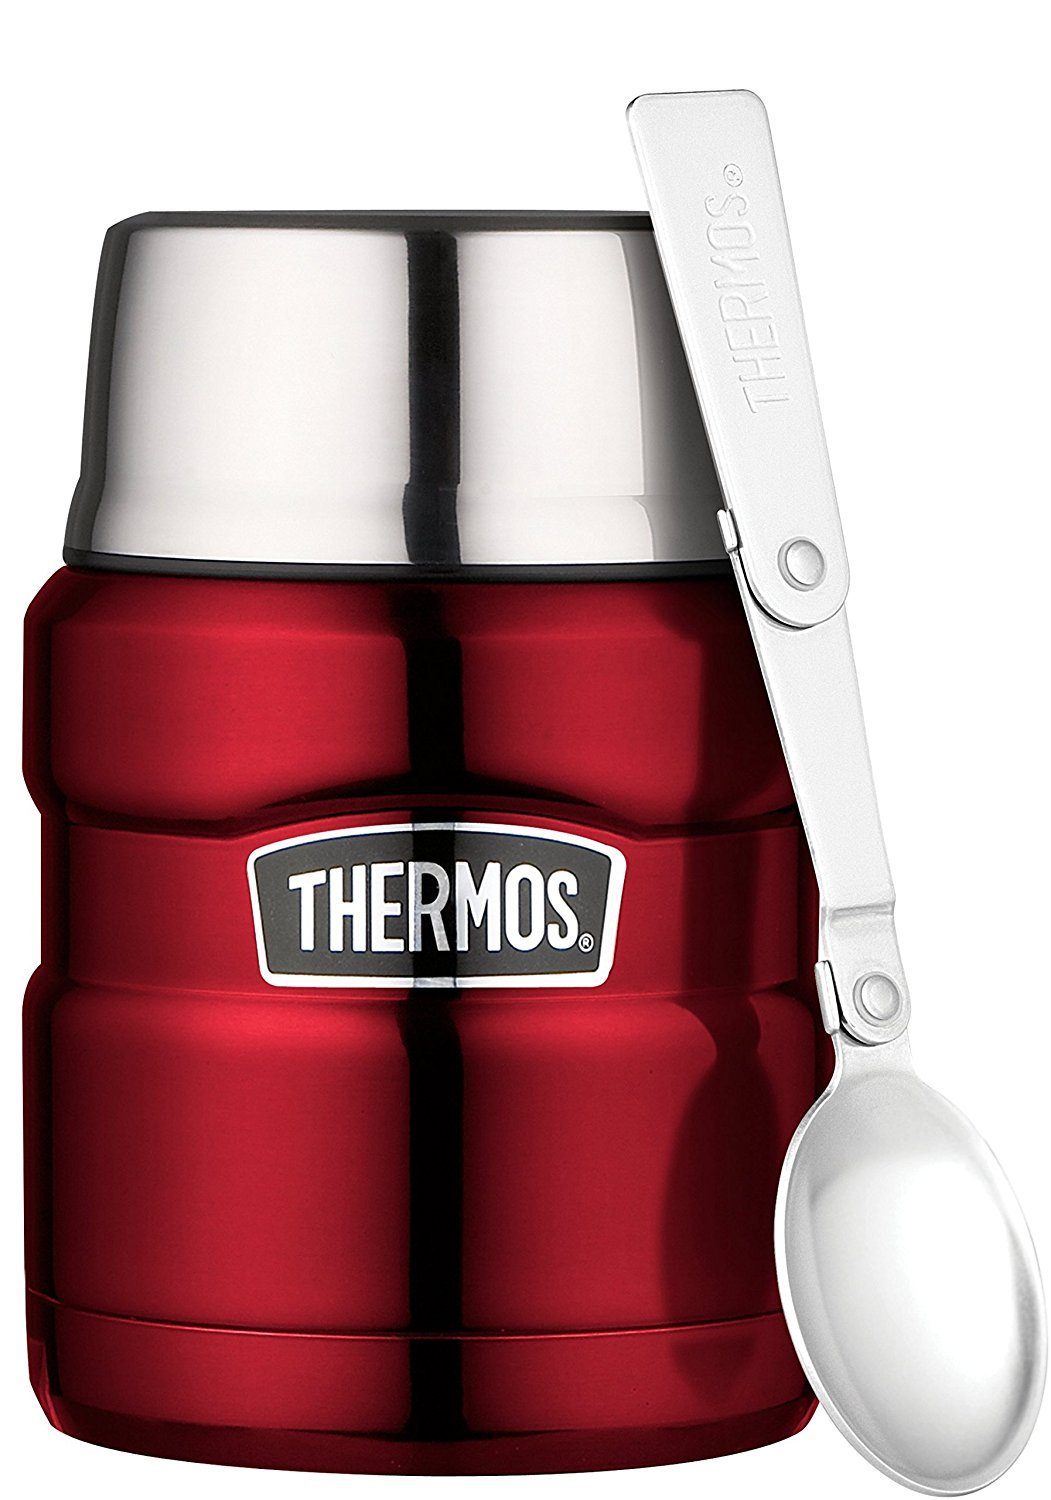 Themos Lunch box